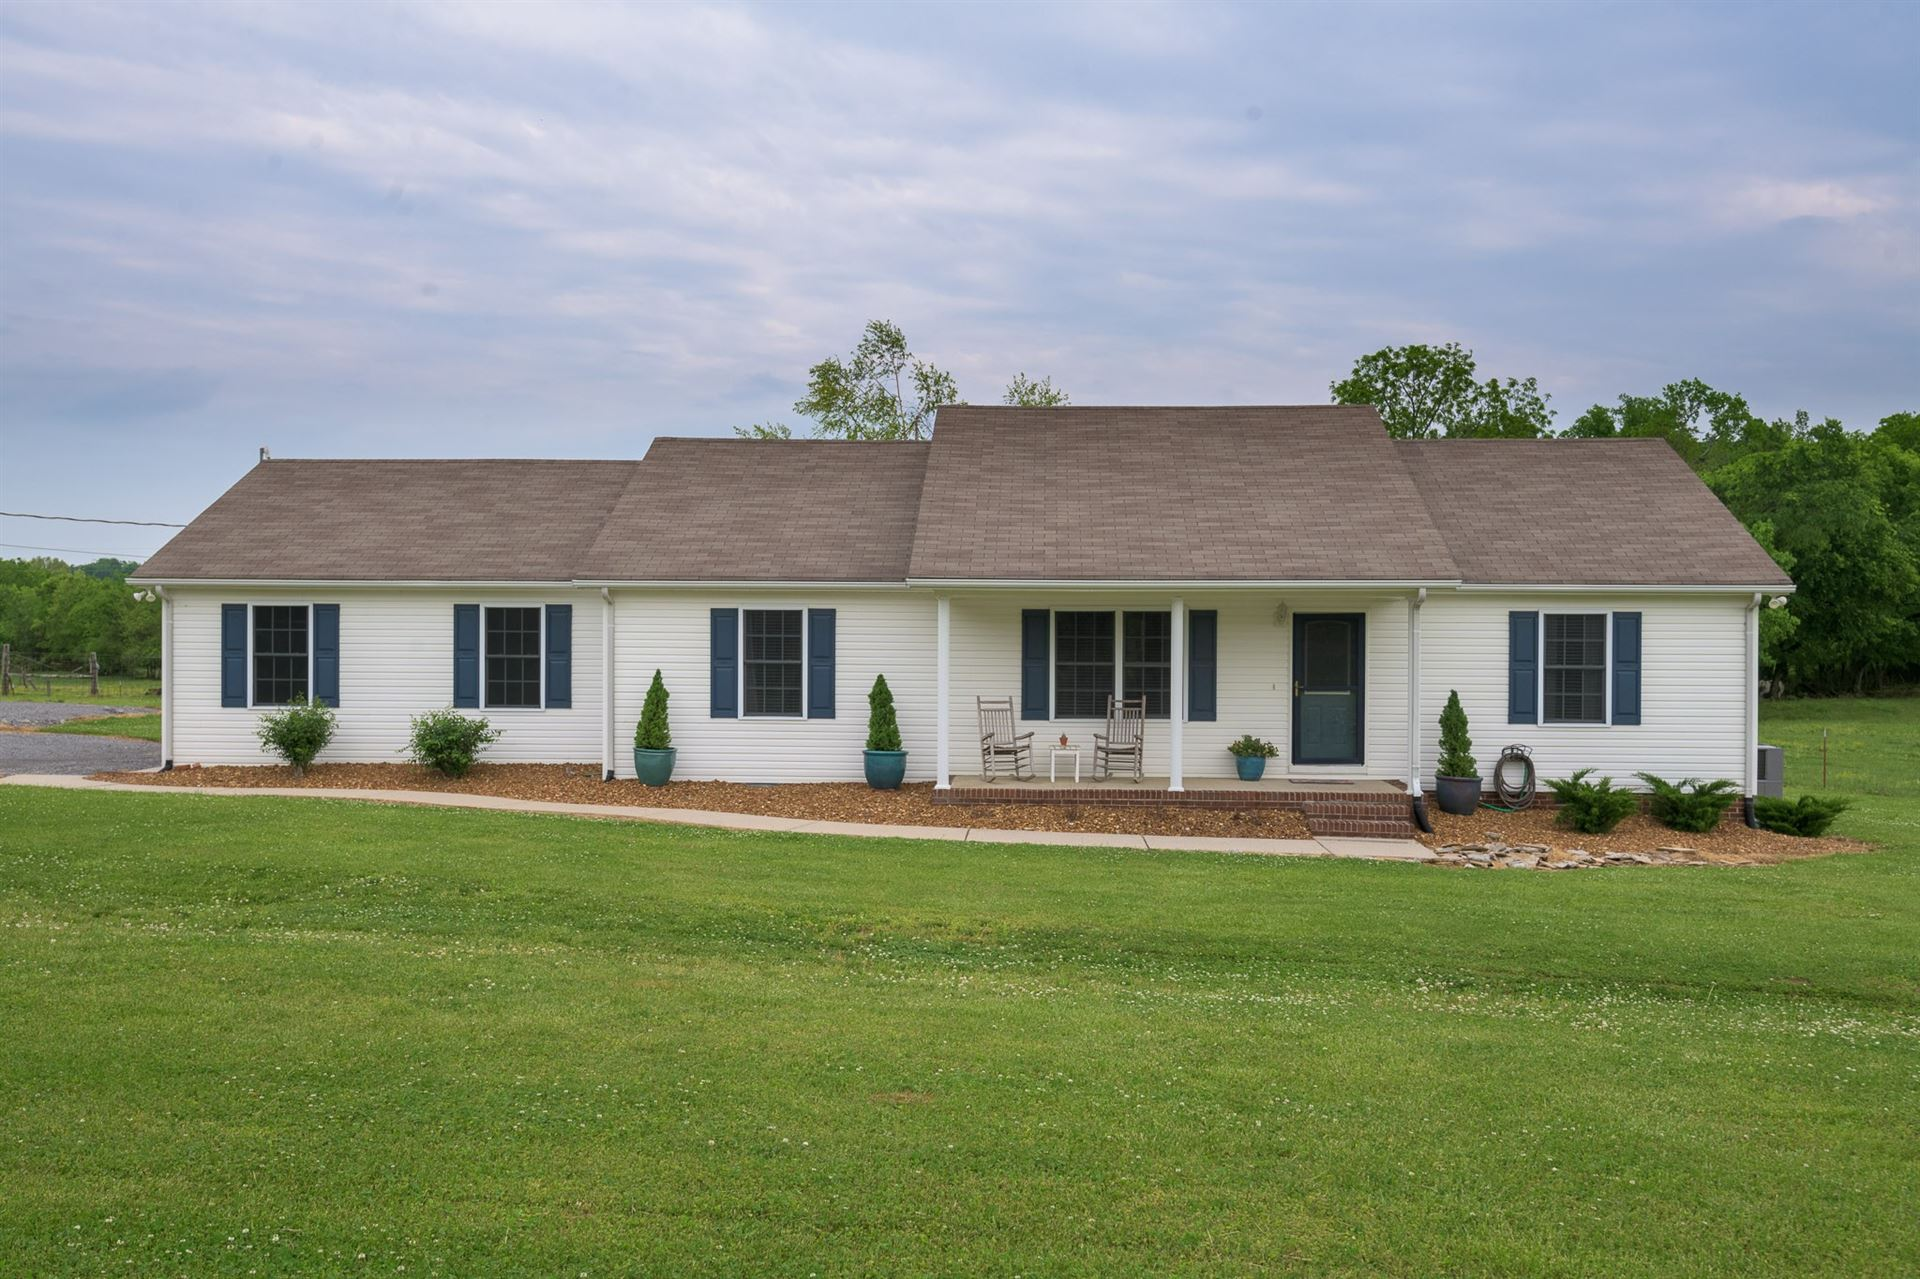 1432 Old Center Church Rd, Shelbyville, TN 37160 - MLS#: 2248525